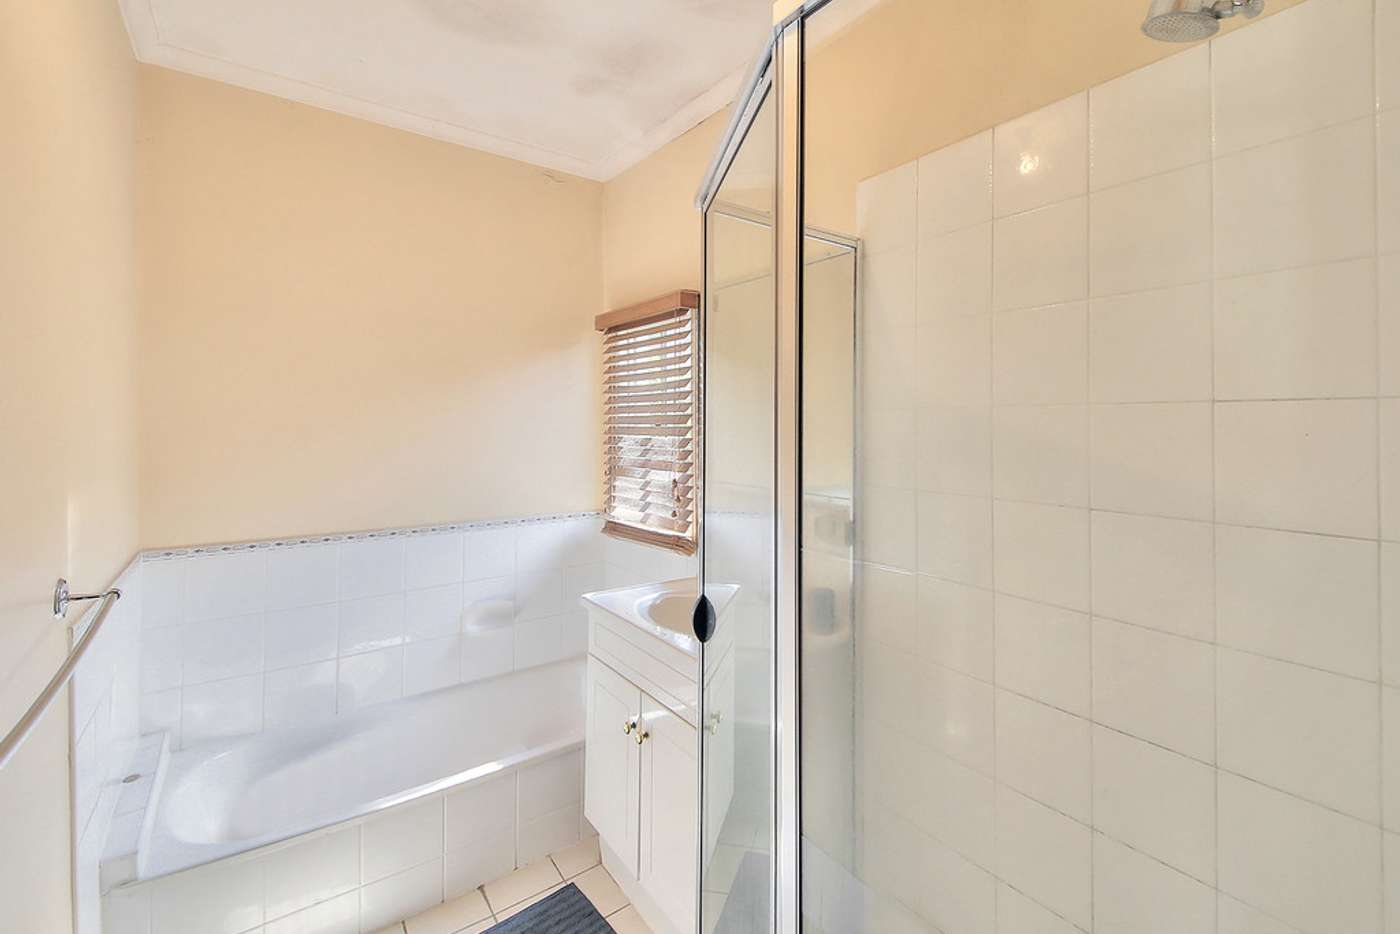 Sixth view of Homely house listing, 12 Hammersmith Street, Coopers Plains QLD 4108